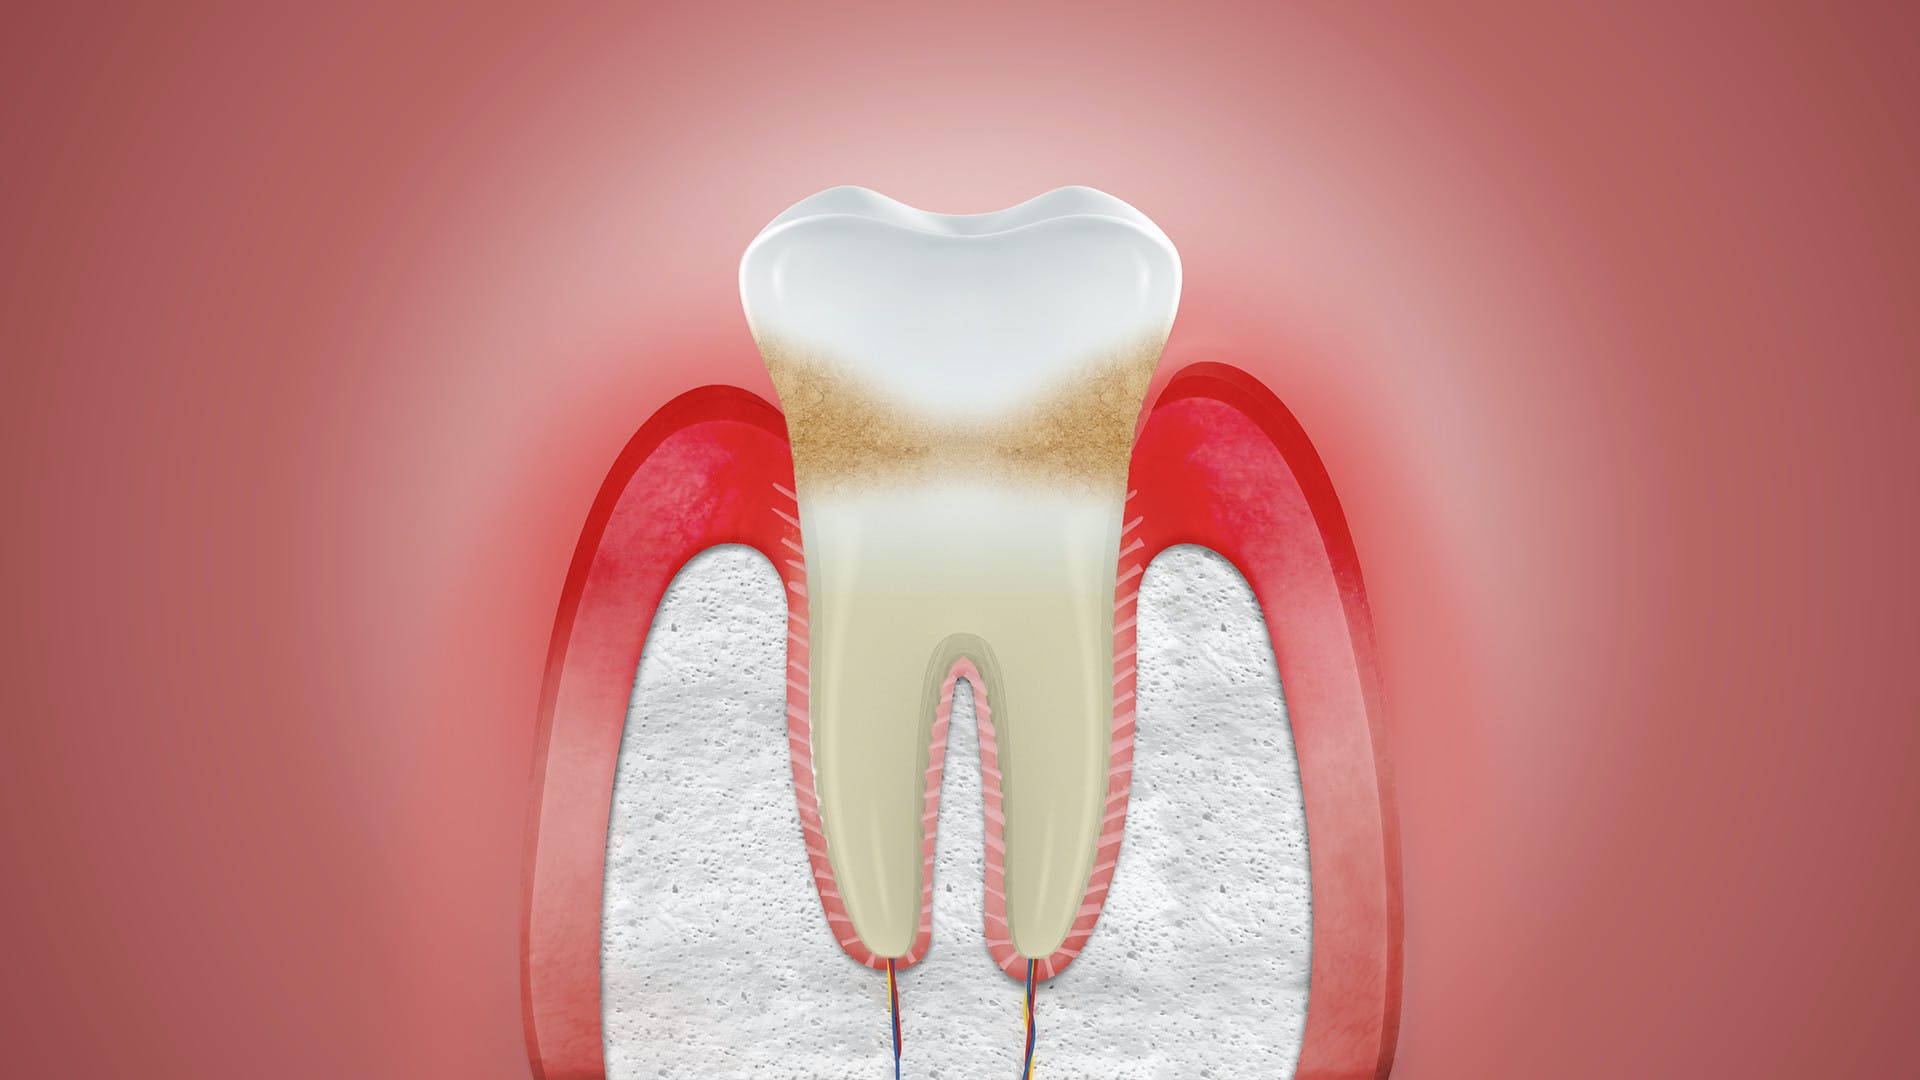 Illustration of swollen gums